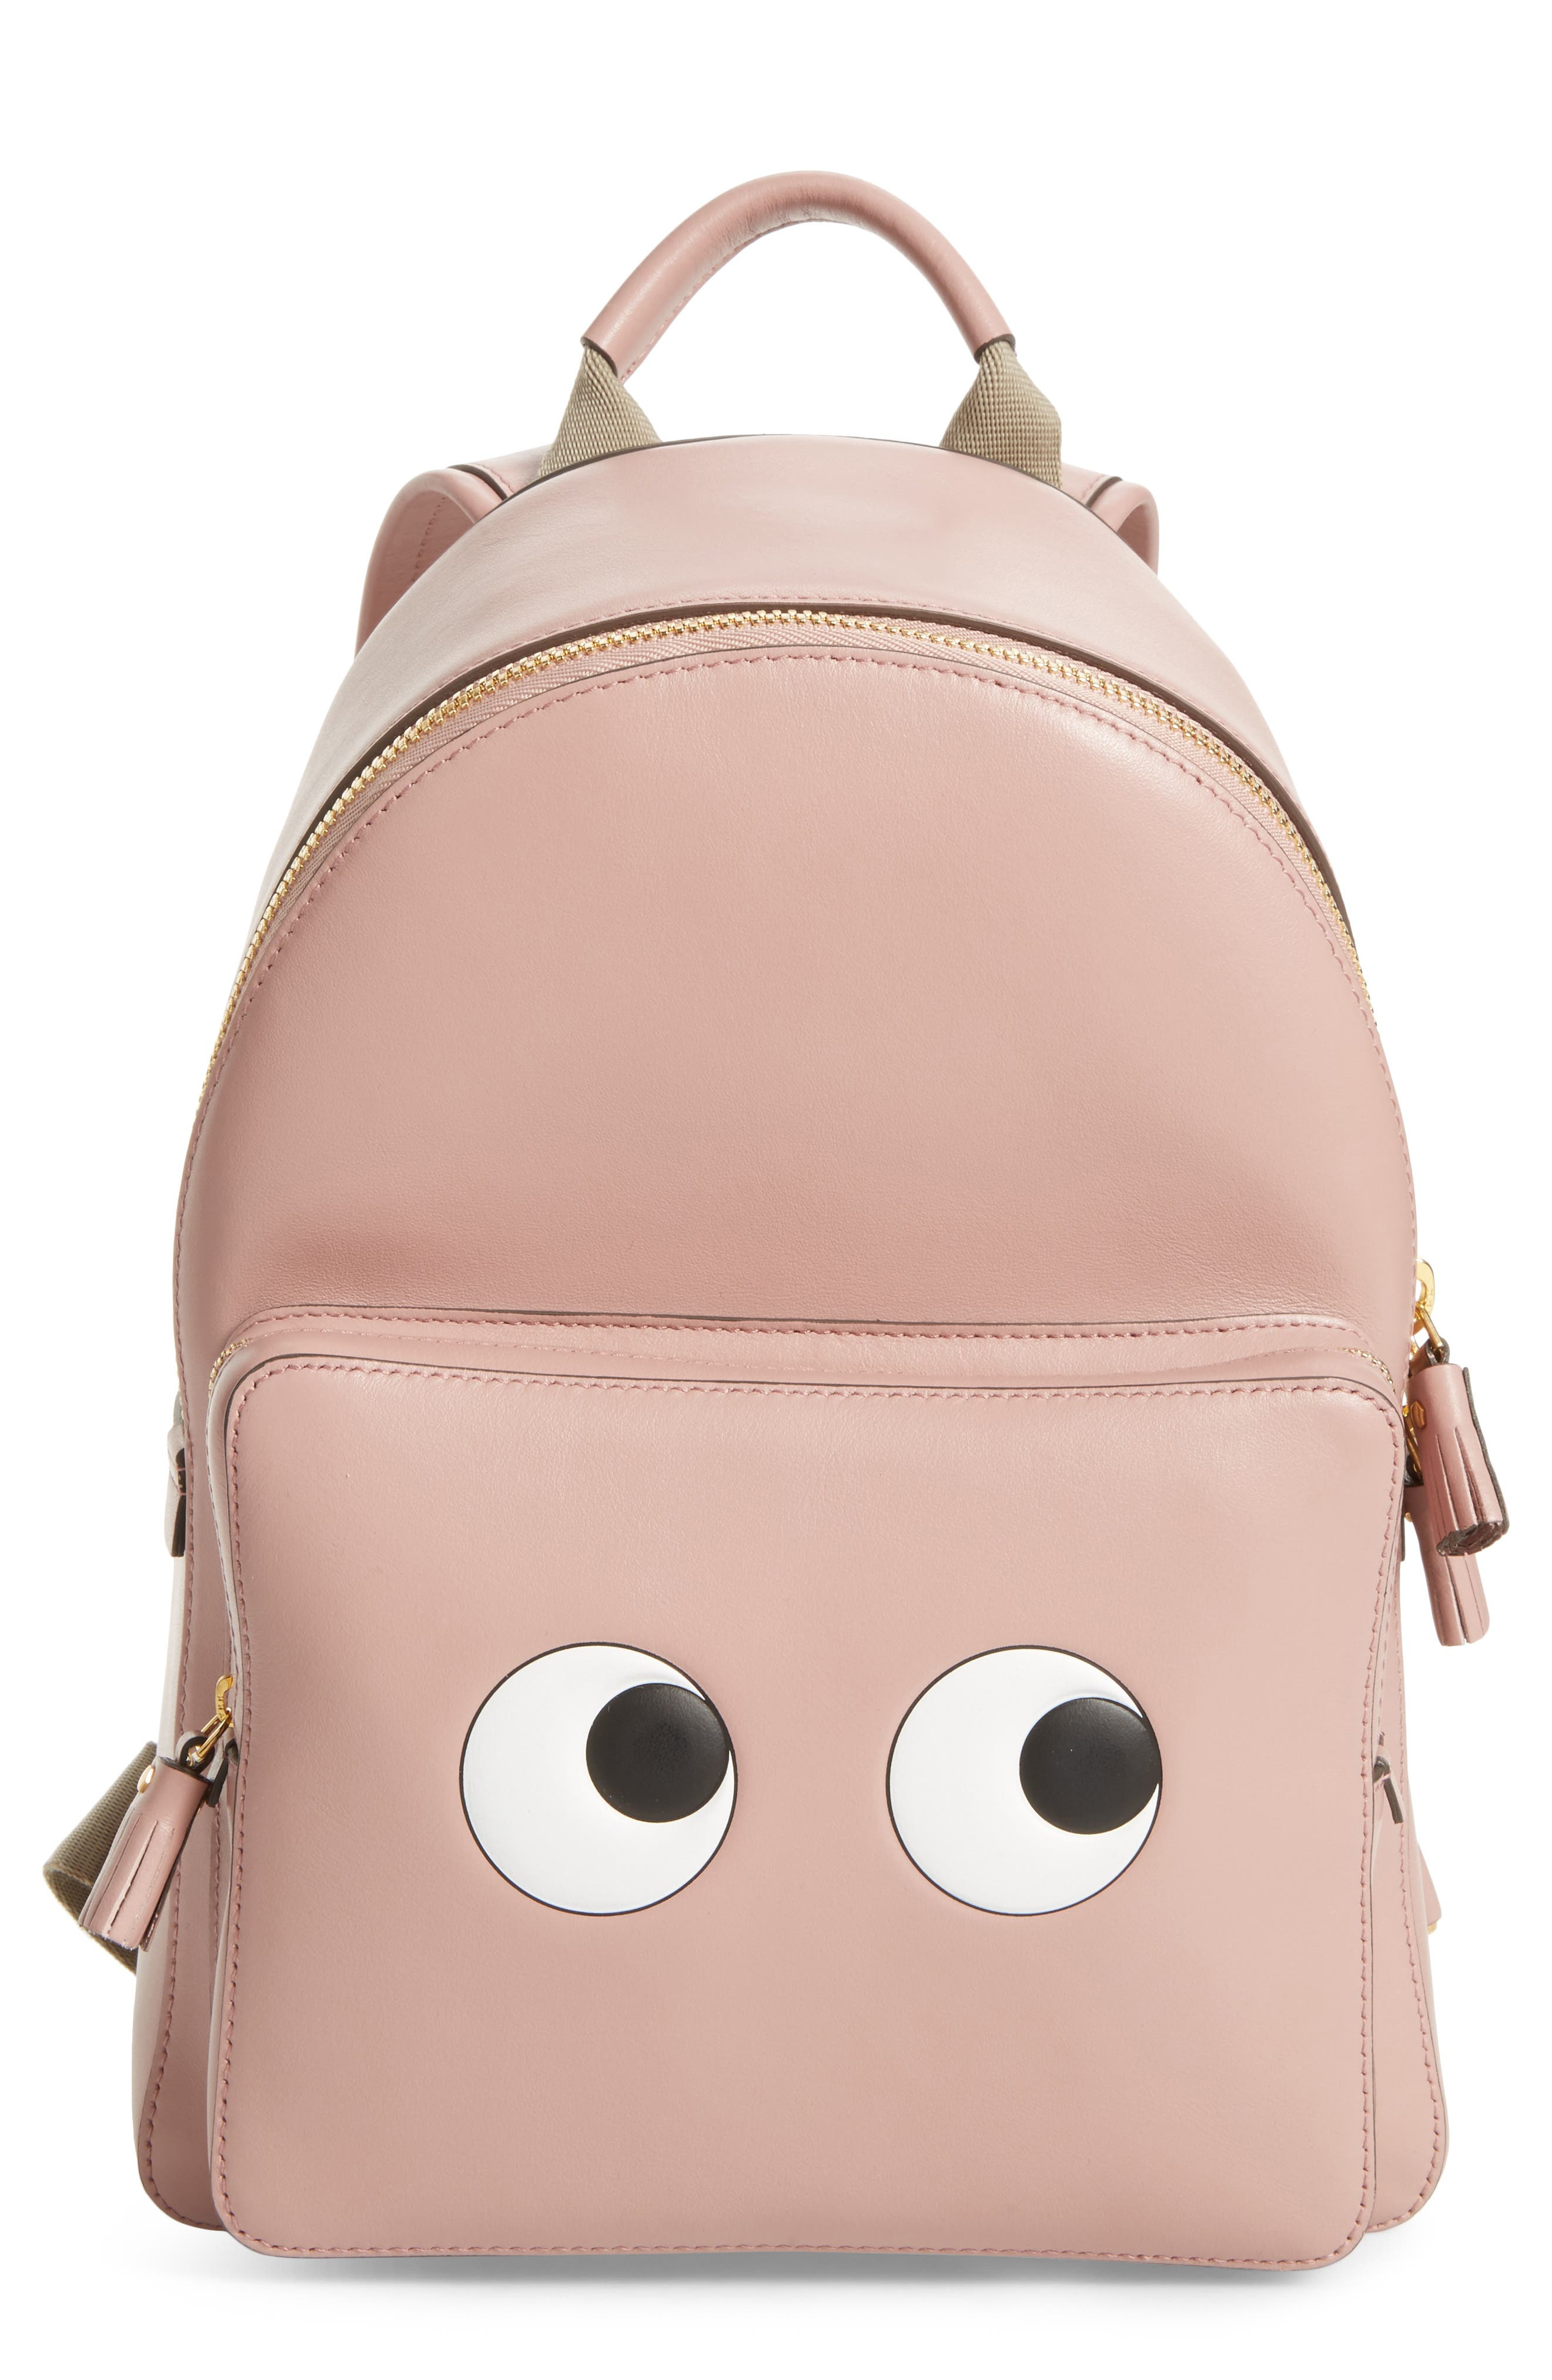 Alternate Image 1 Selected - Anya Hindmarch Eyes Mini Leather Backpack